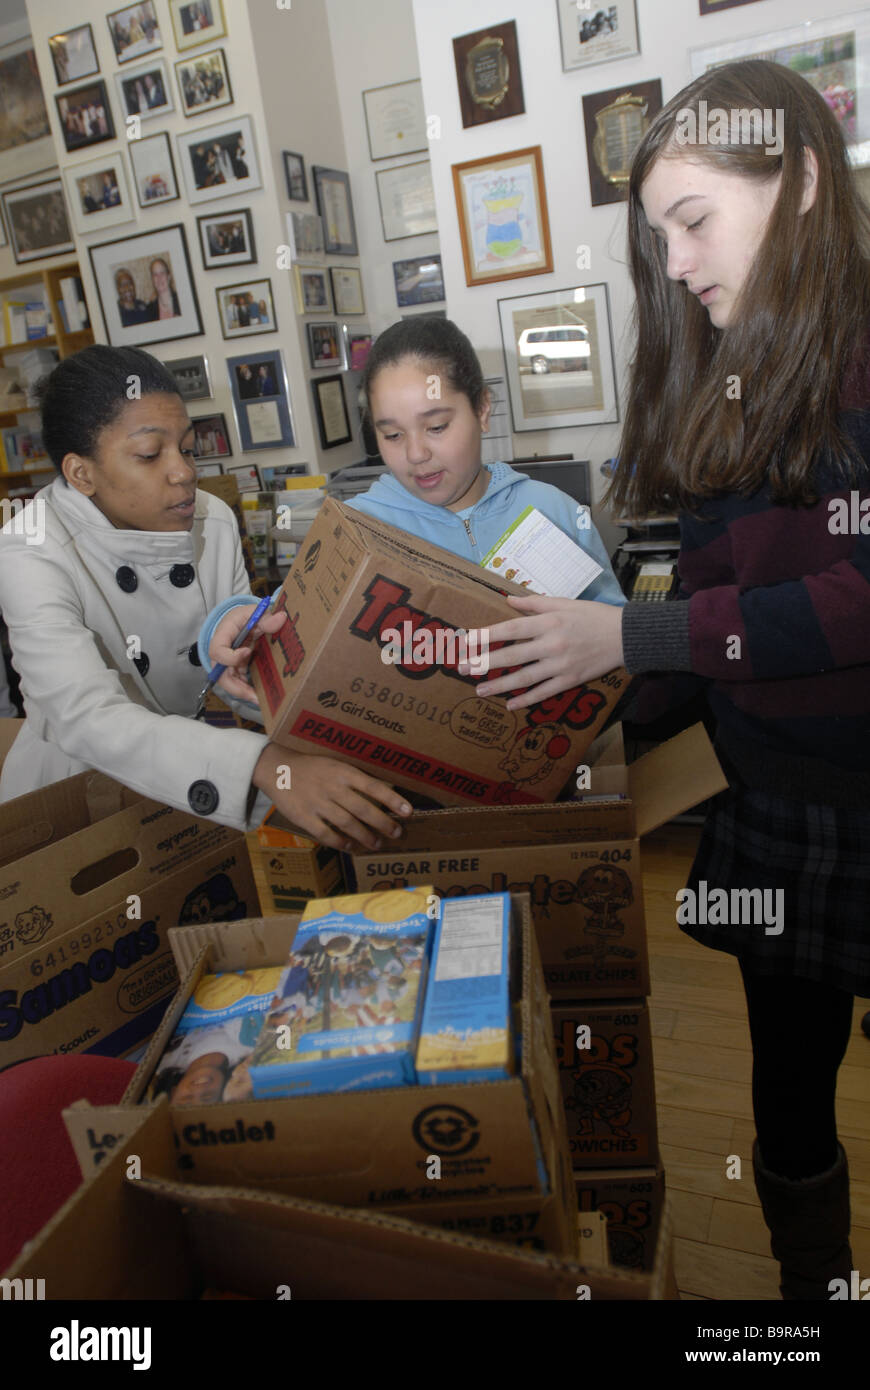 Girl scouts and volunteers sort inventory and distribute Girl Scout cookies sold by Upper West Side Troop 3068 in - Stock Image